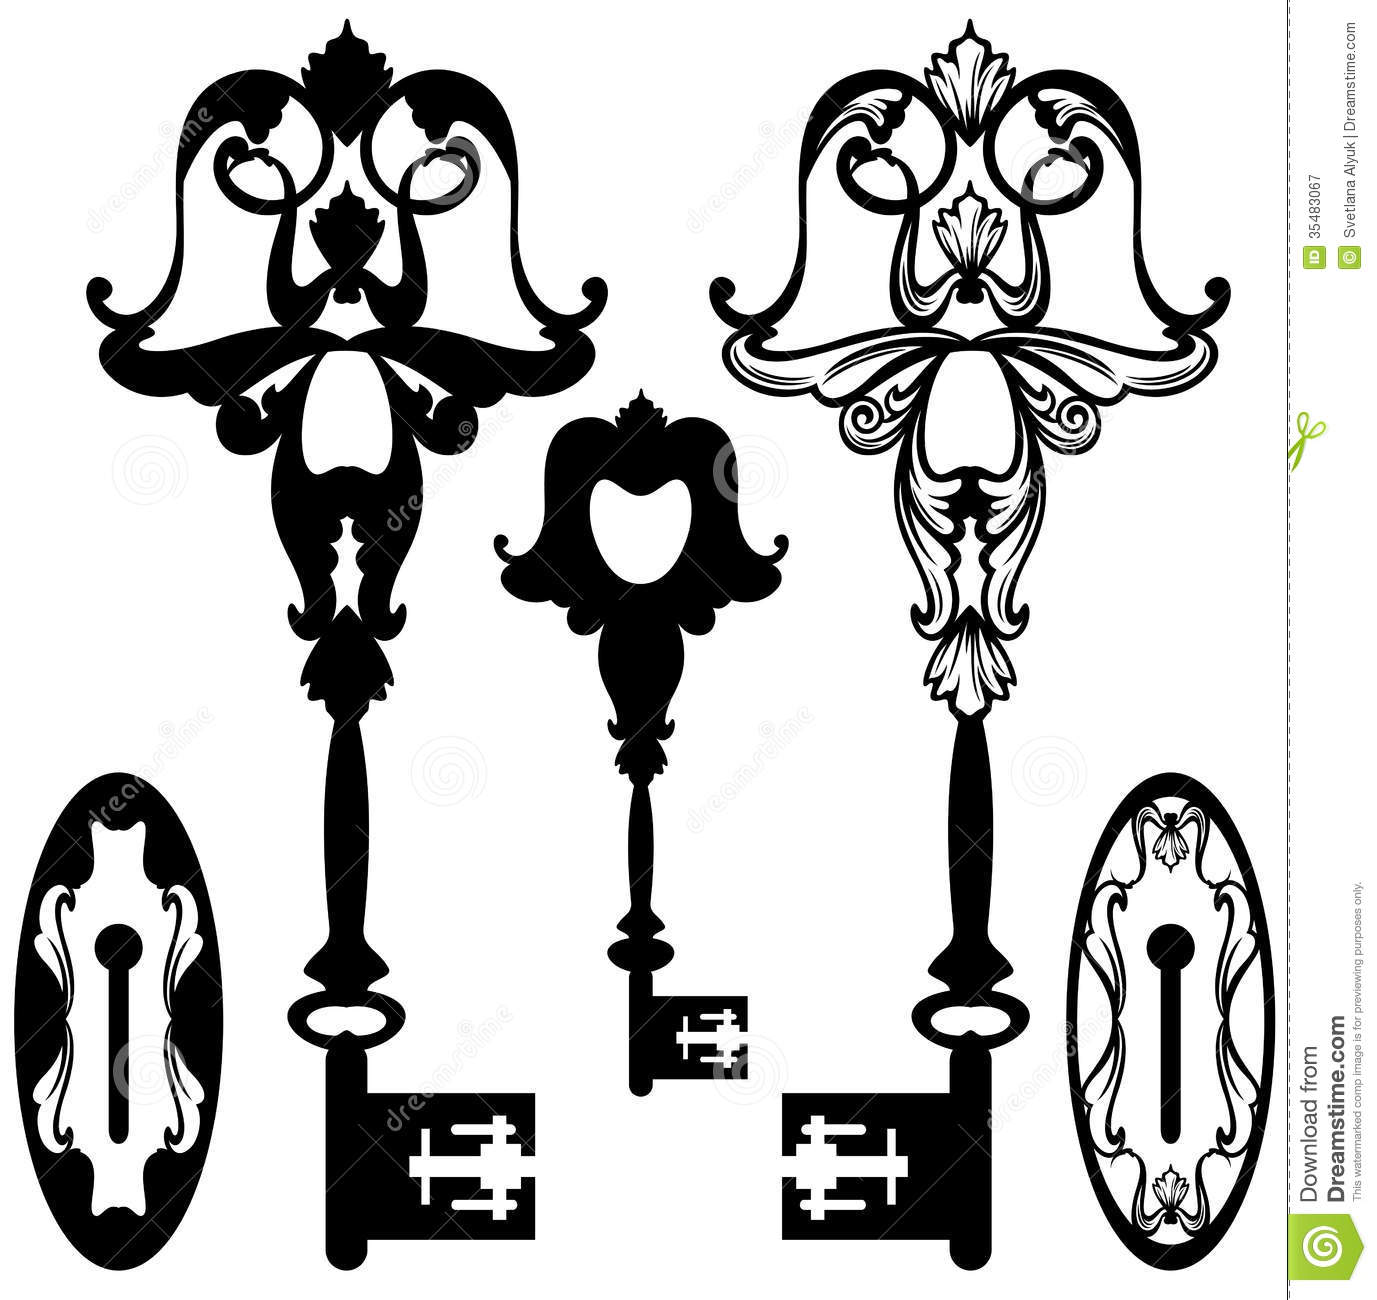 Skeleton Key Vector Stock Vector Illustration Of Ornate